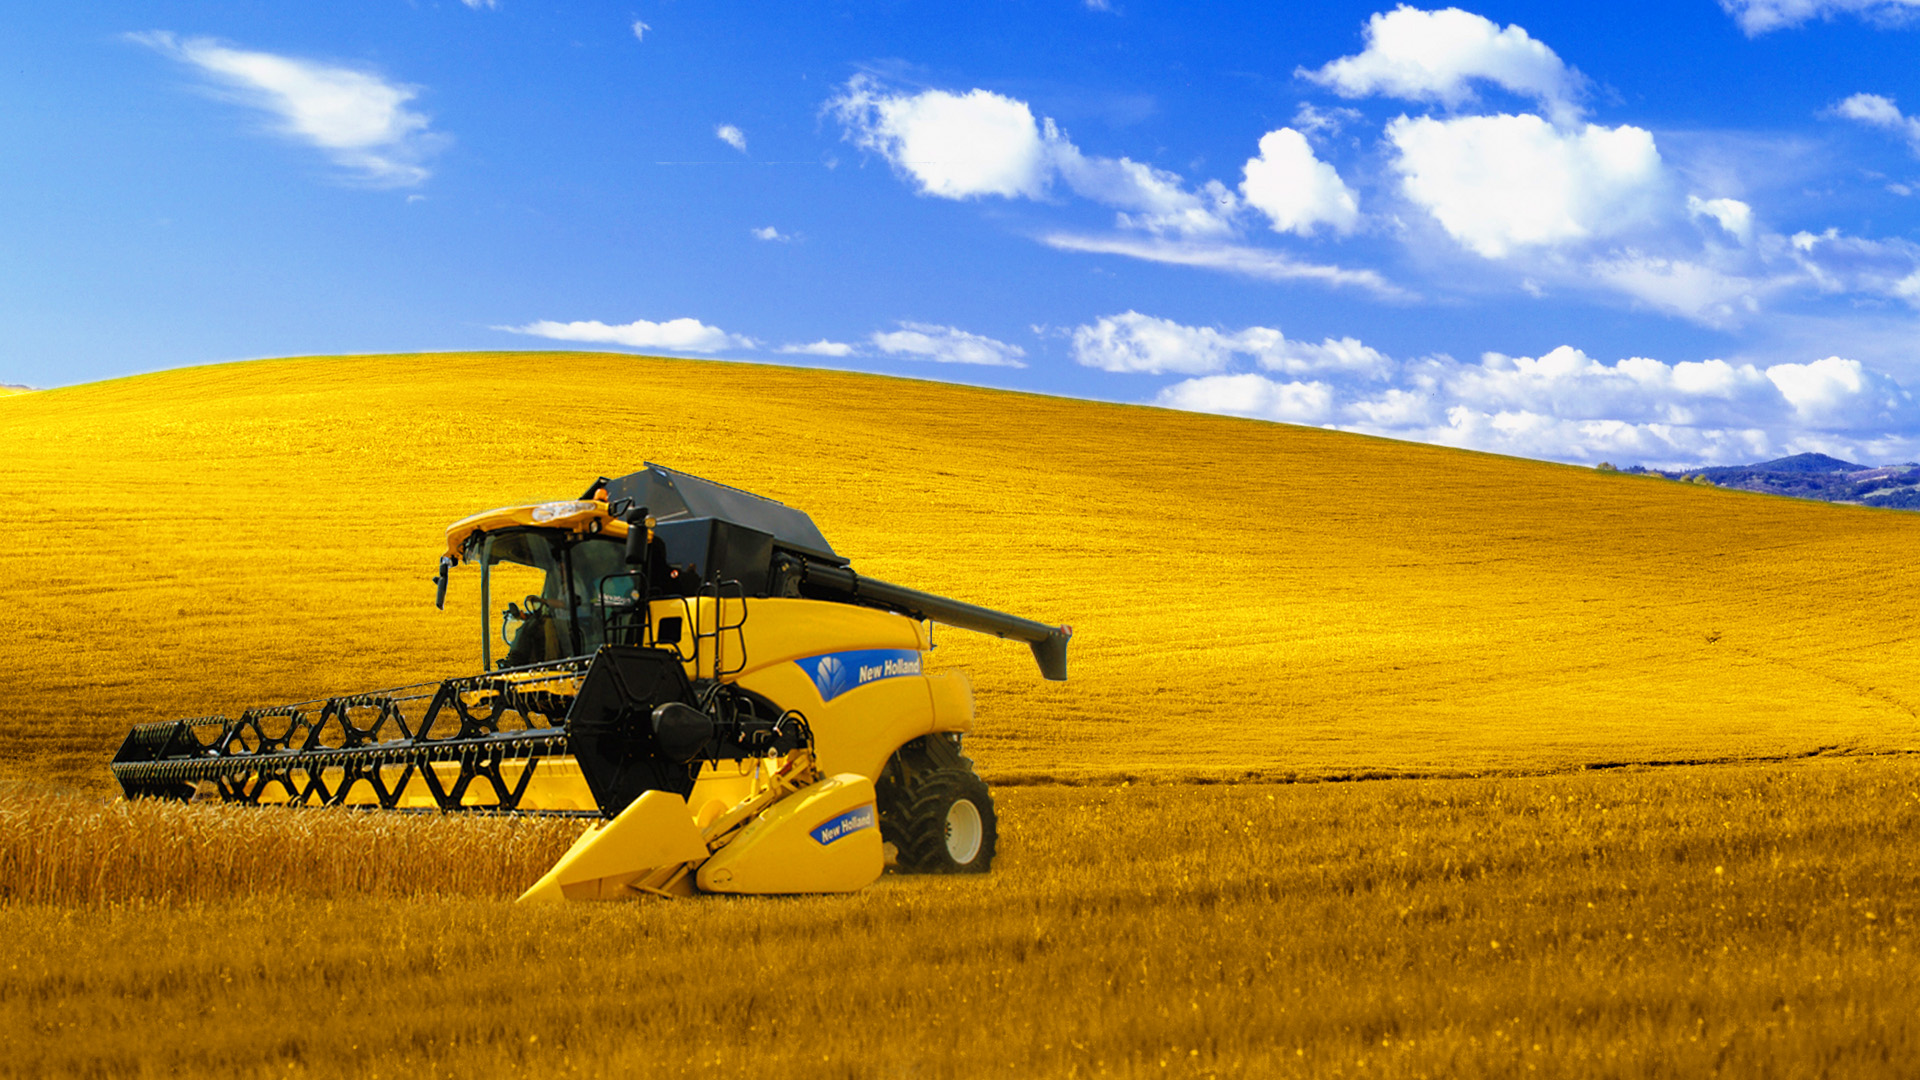 New Holland Hd Wallpaper  Background Image  1920X1080 -1584